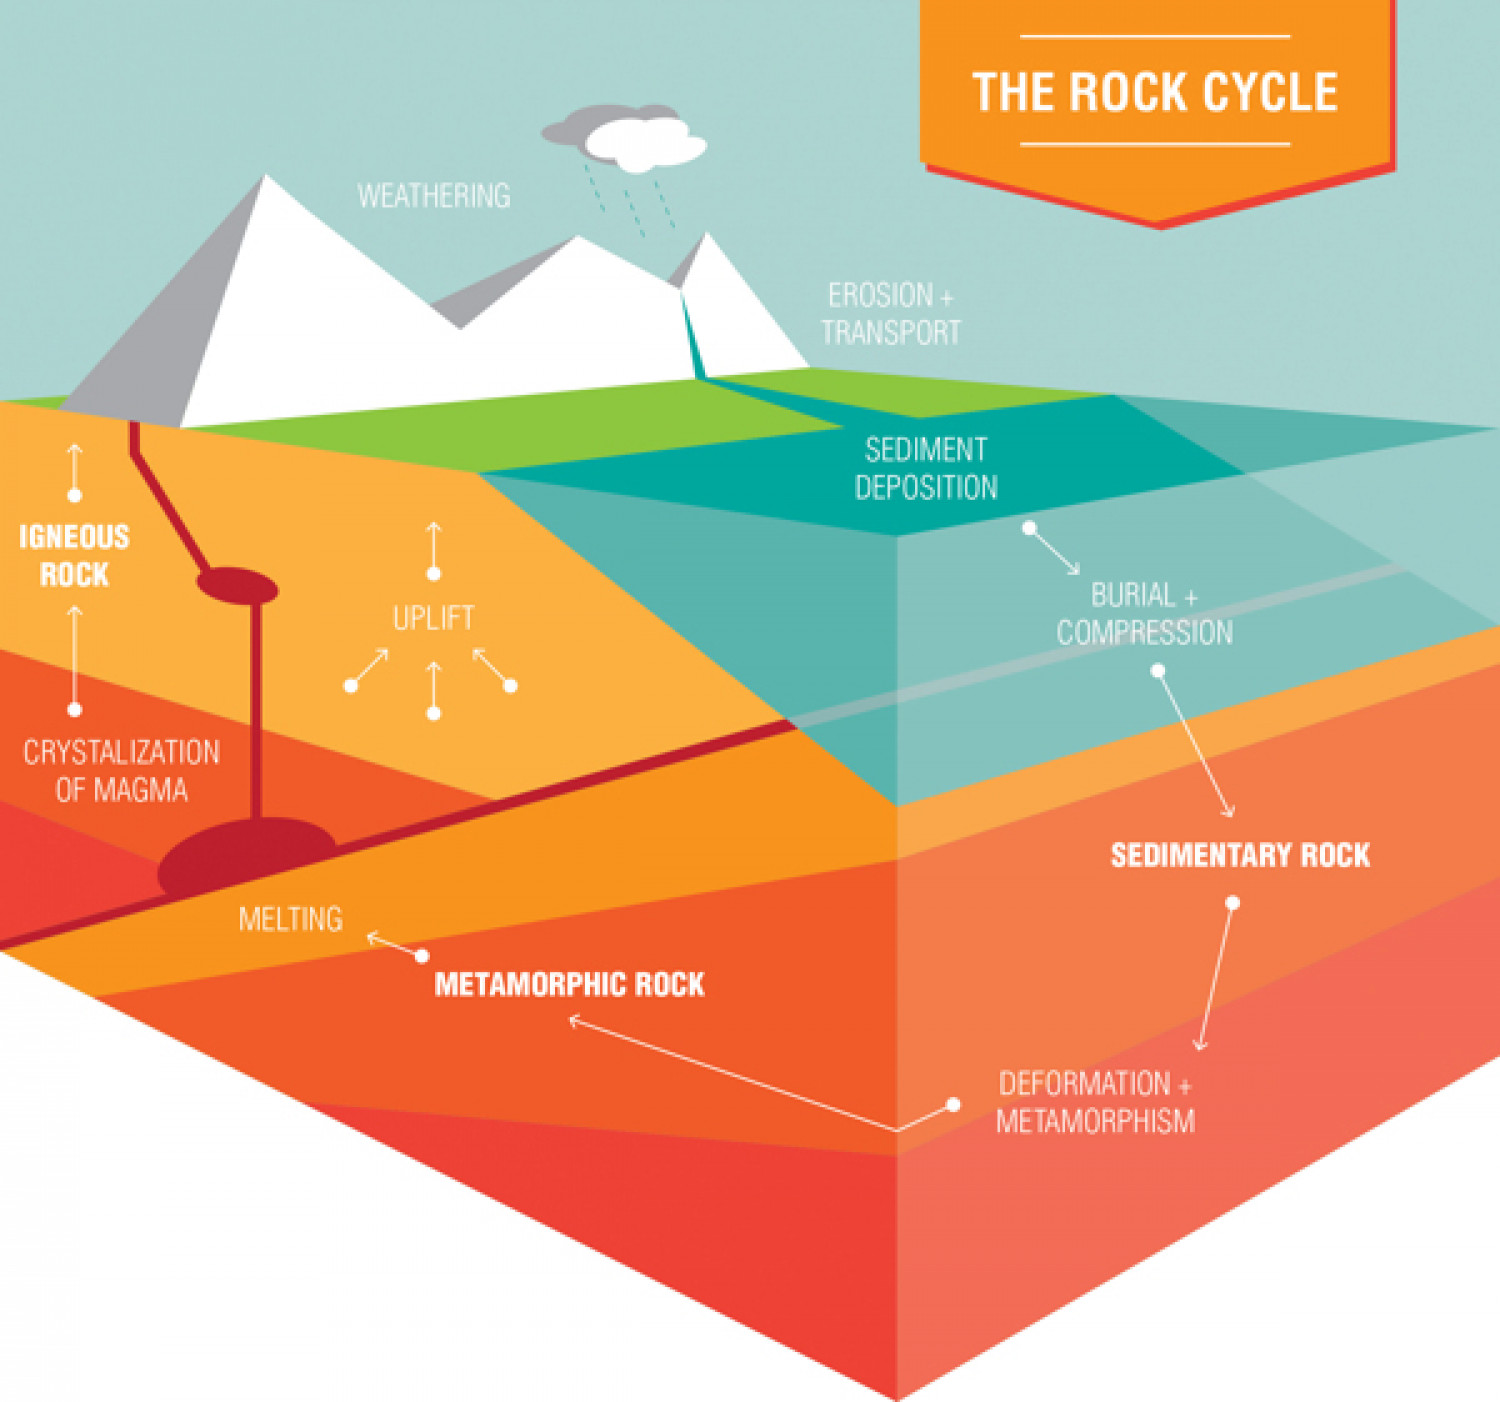 The rock cycle visual the rock cycle infographic thecheapjerseys Images